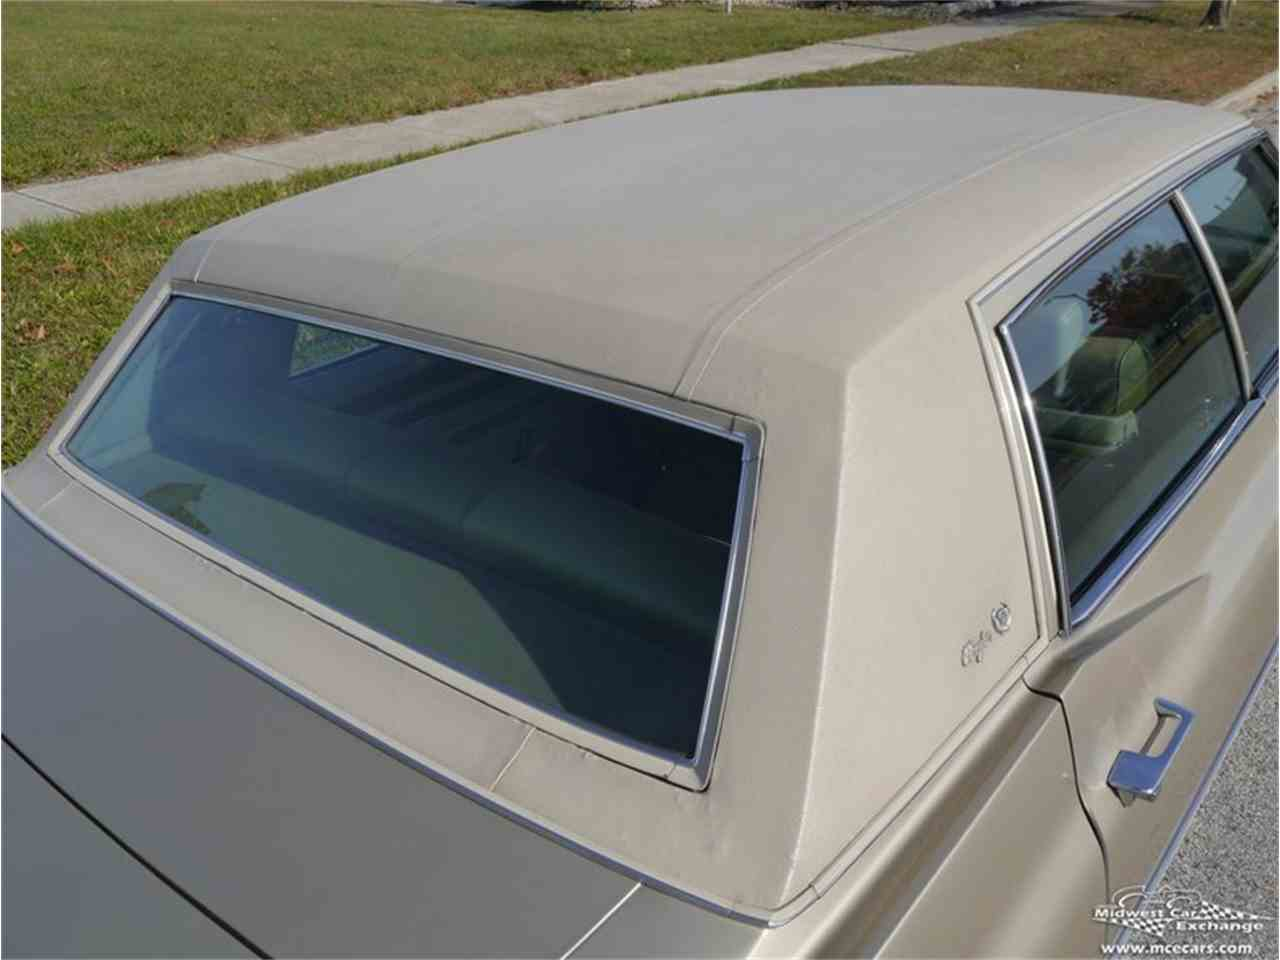 Large Picture of '70 Cadillac Fleetwood Brougham located in Illinois - $12,900.00 - M9KI